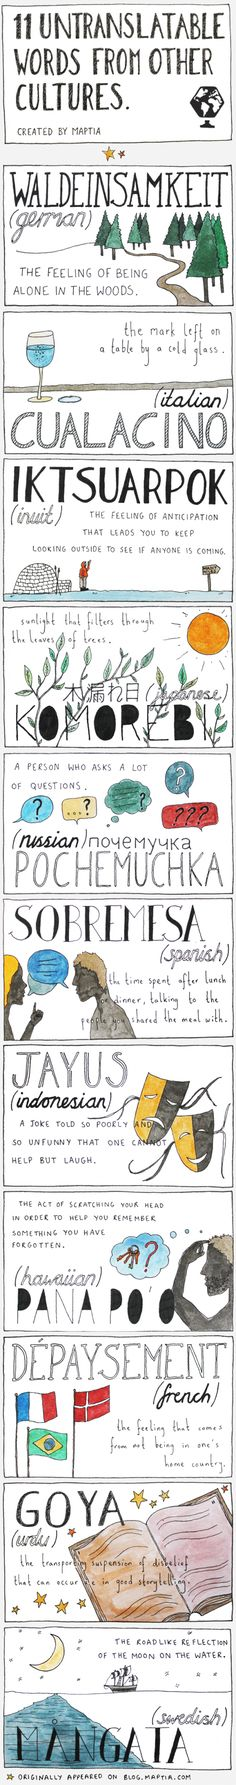 11 Untranslatable Words From Other Cultures Infographic. love this! these words are so cool